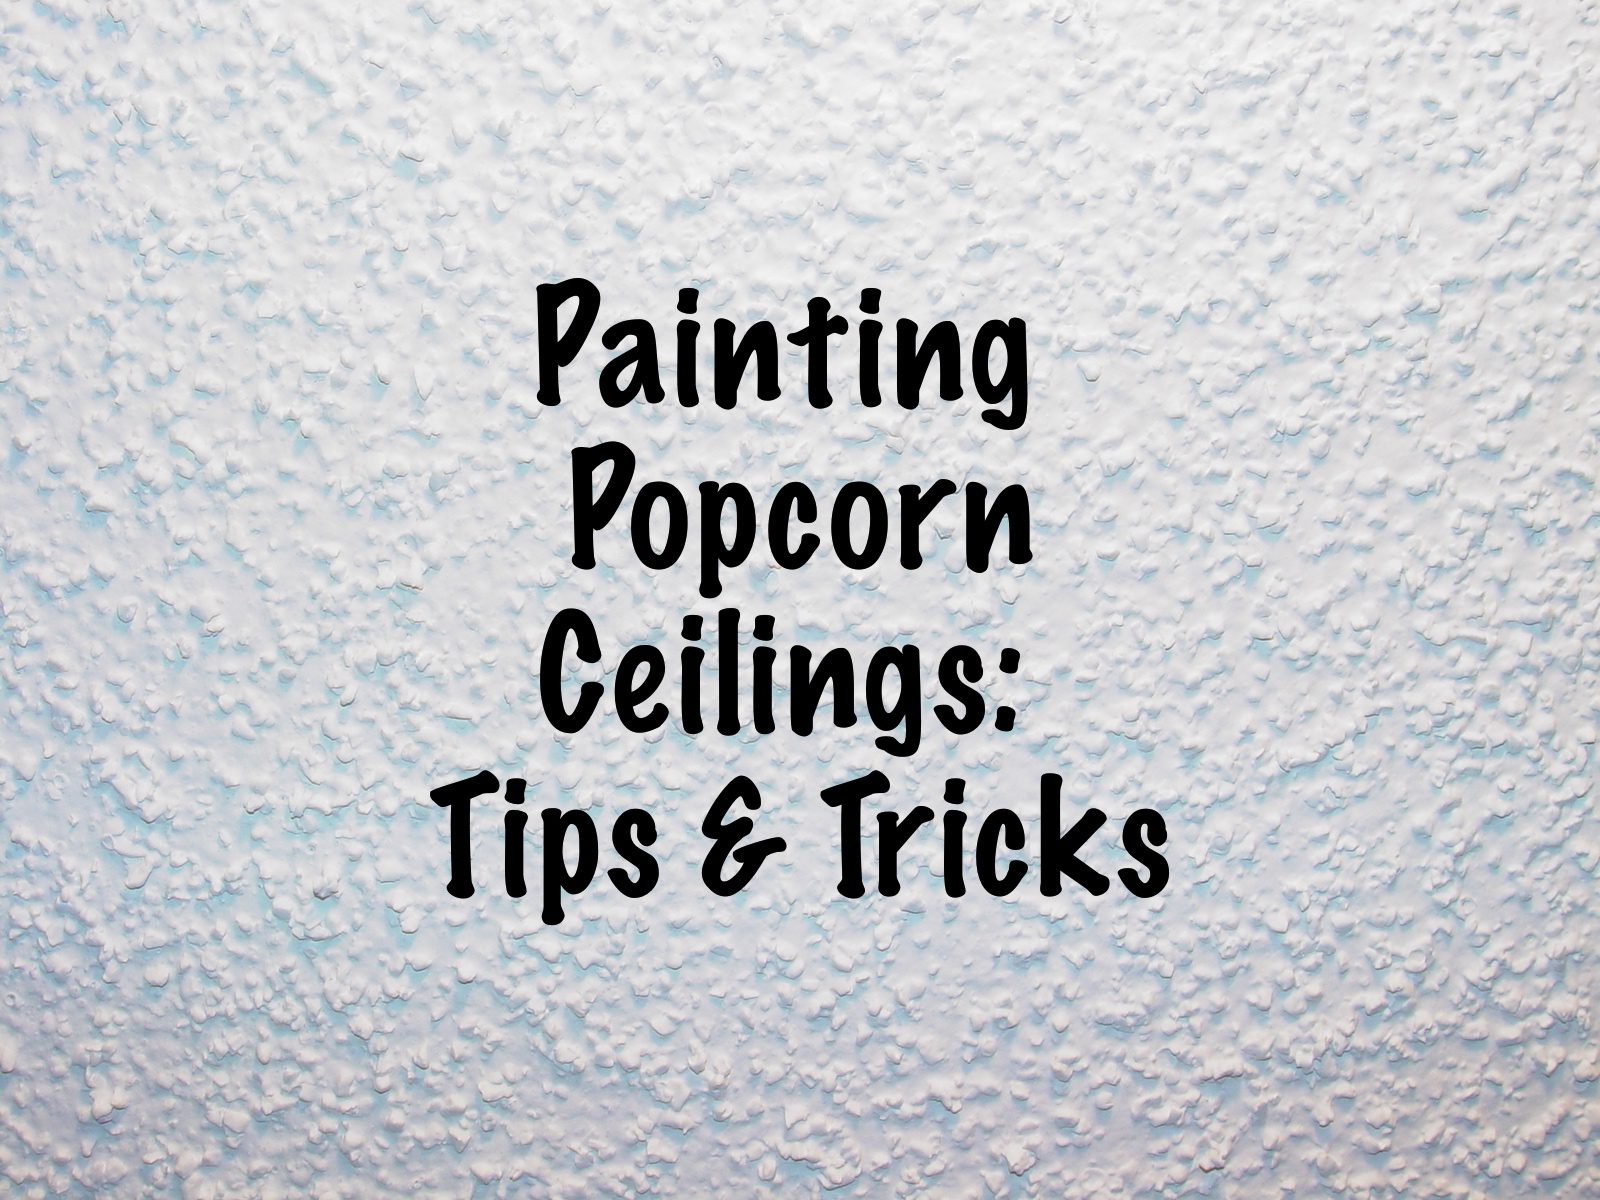 Popcorn ceilings tips and tricks